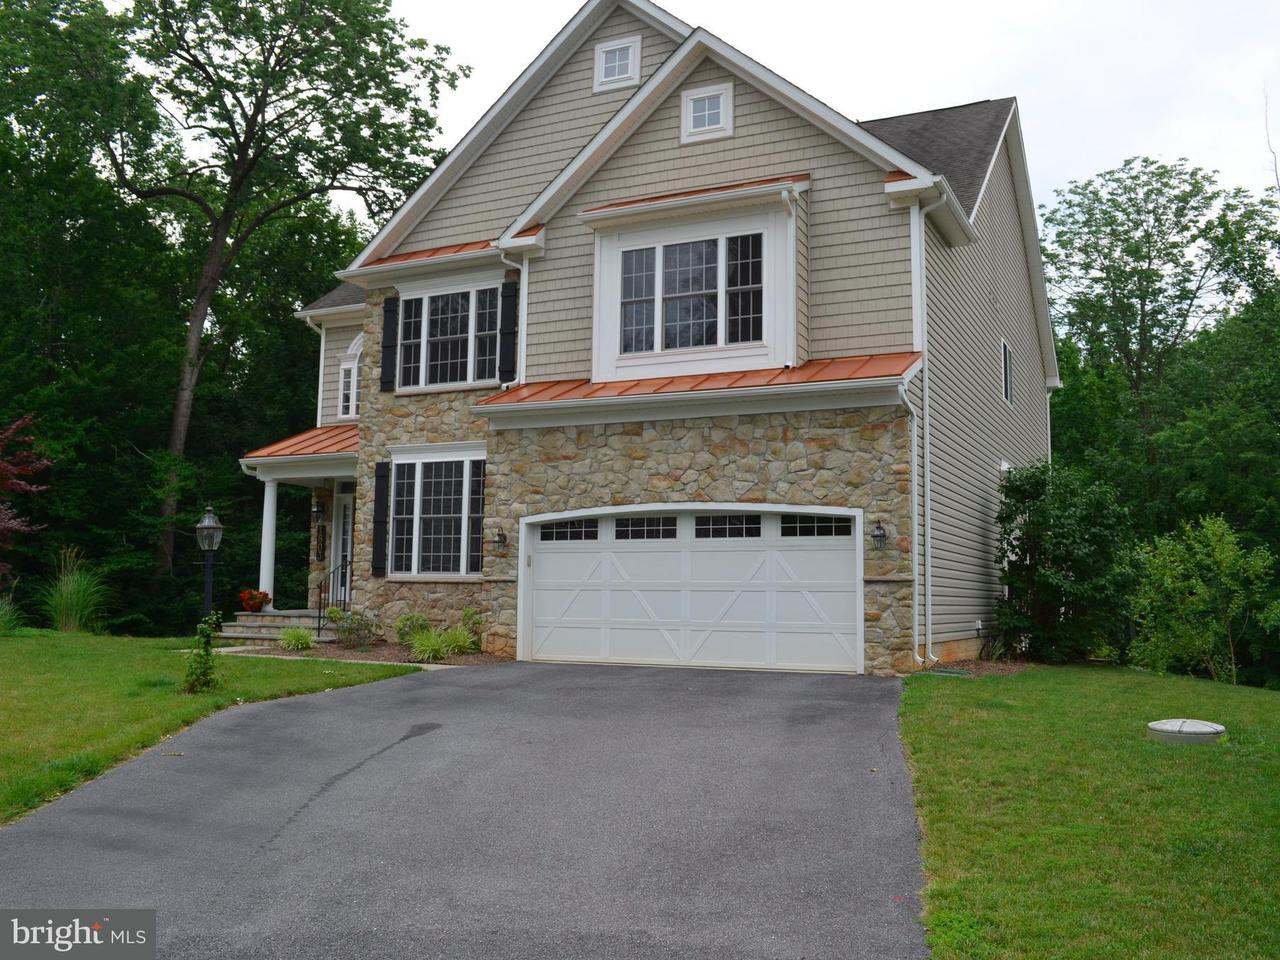 Single Family Home for Sale at 1803 MORNING WALK Drive 1803 MORNING WALK Drive Catonsville, Maryland 21228 United States